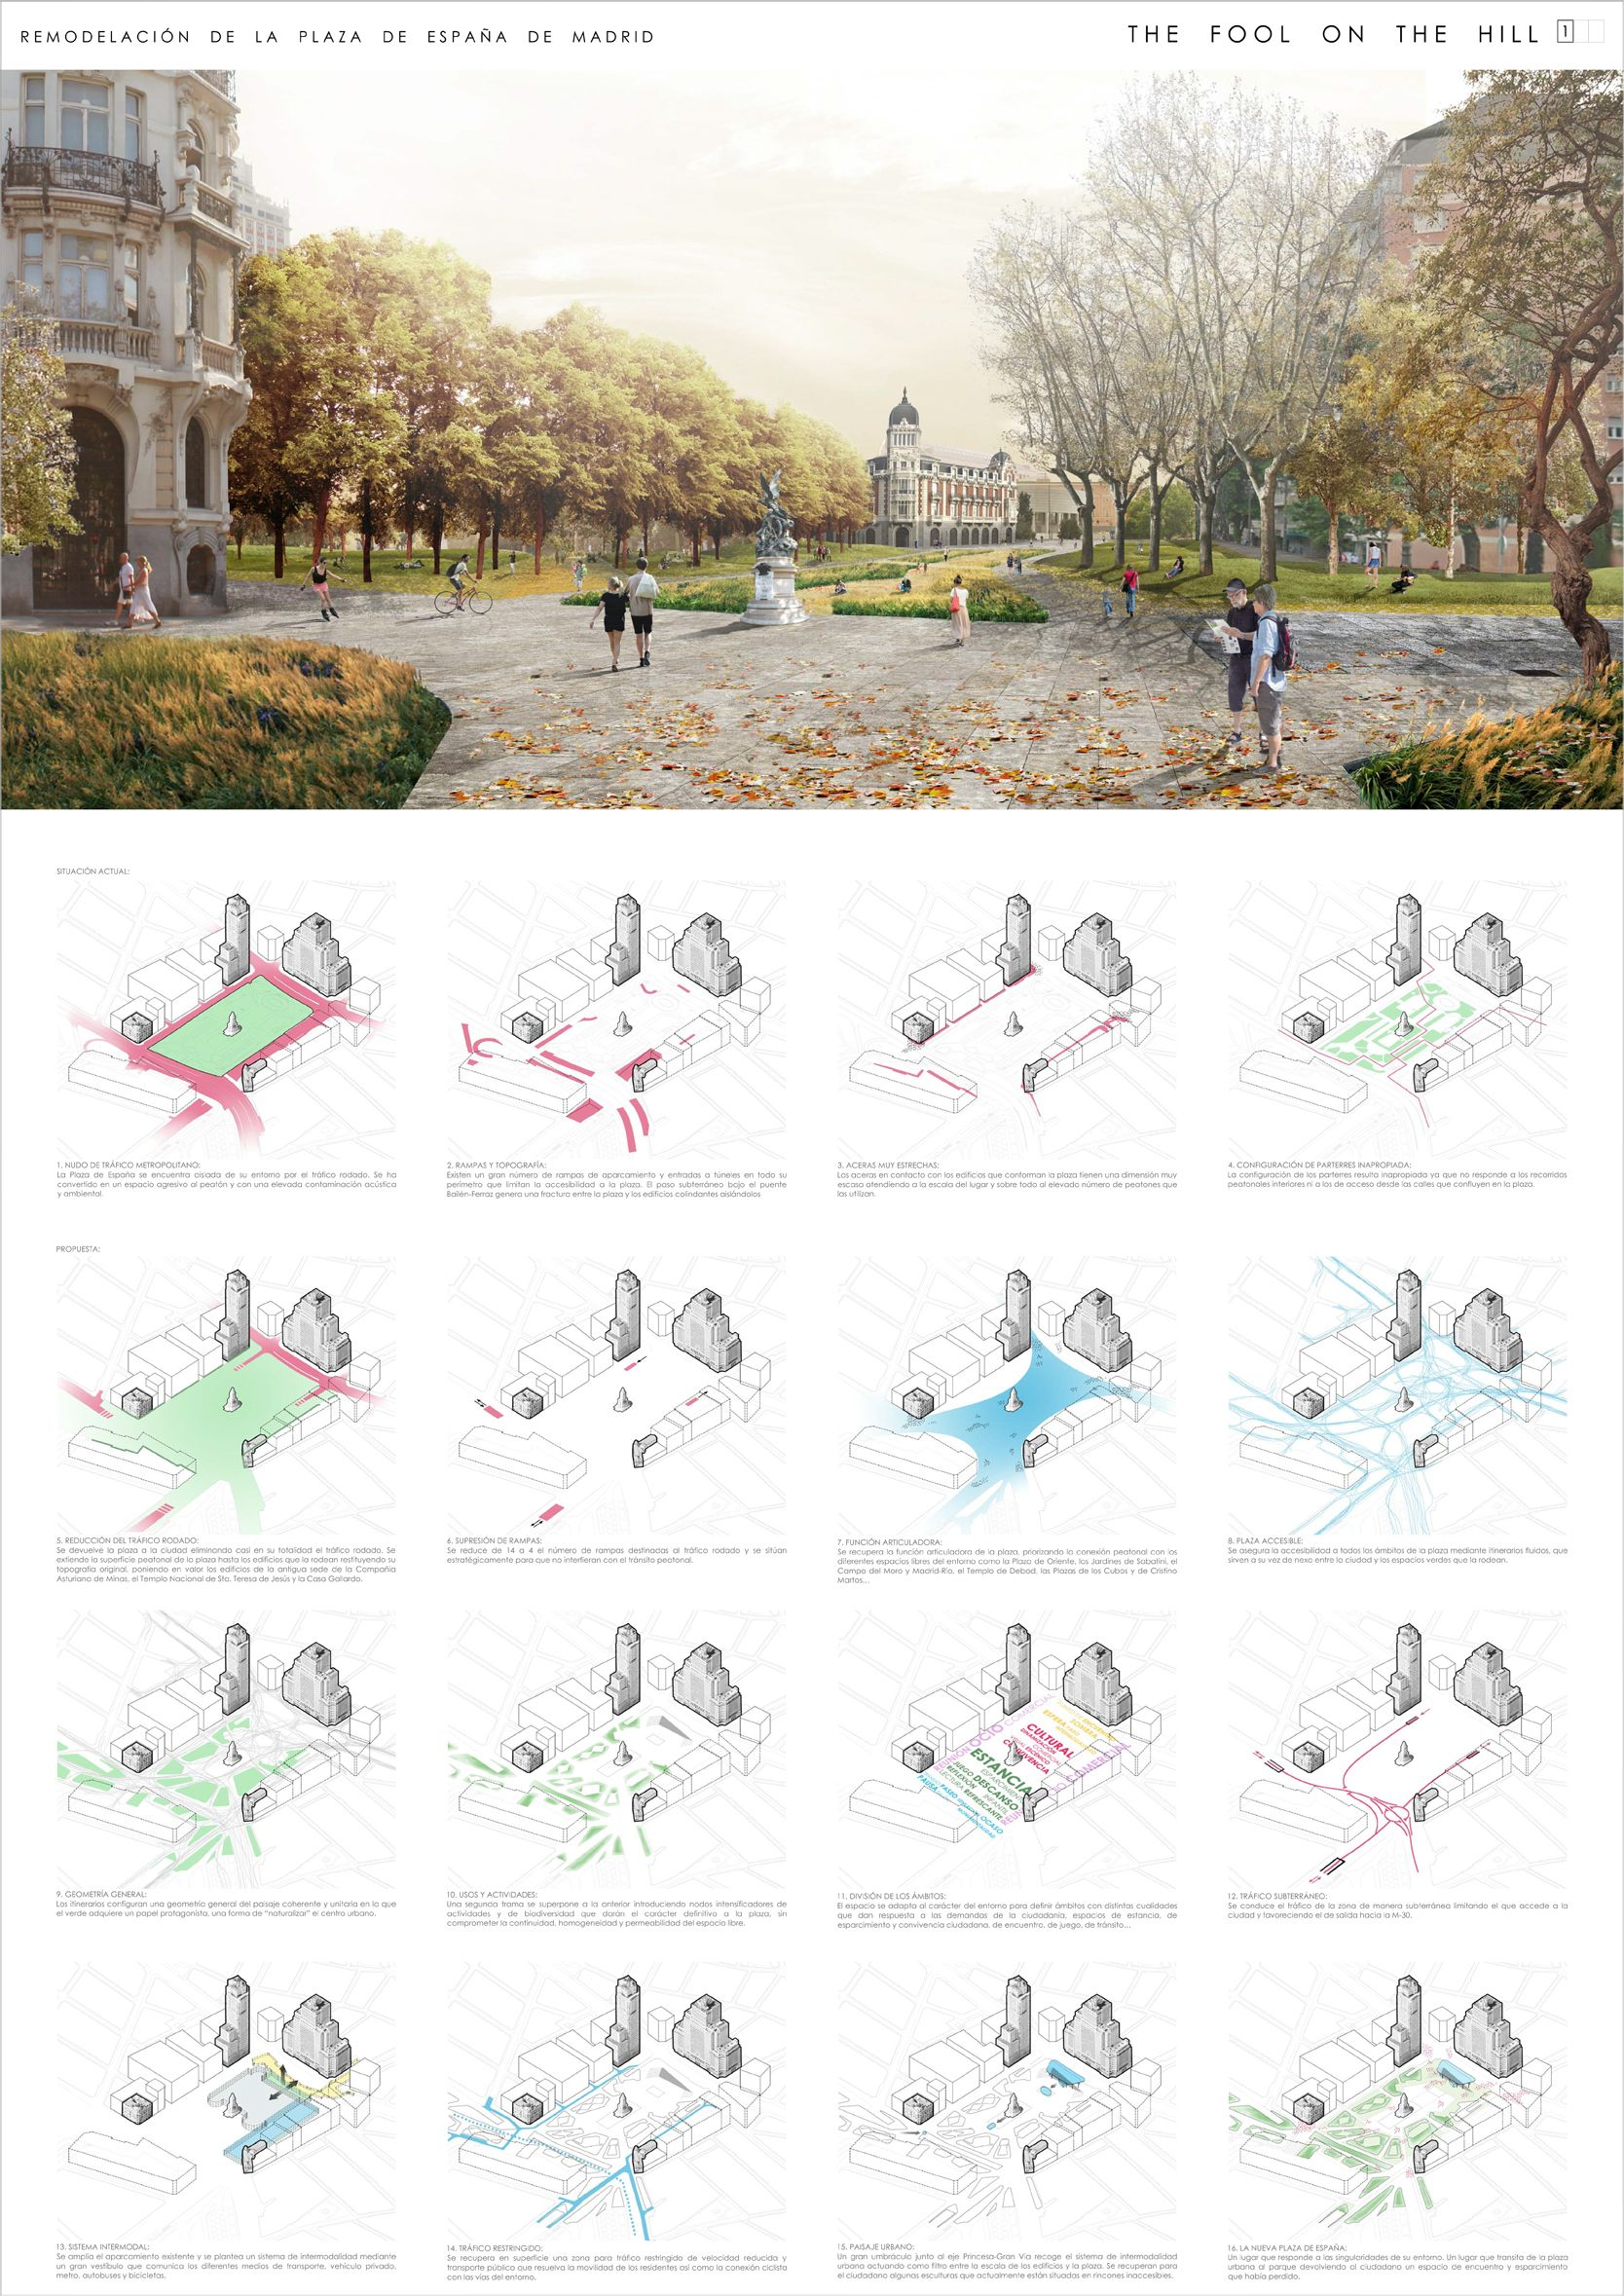 THE FOOL ON THE HILL   arch drawing   Pinterest